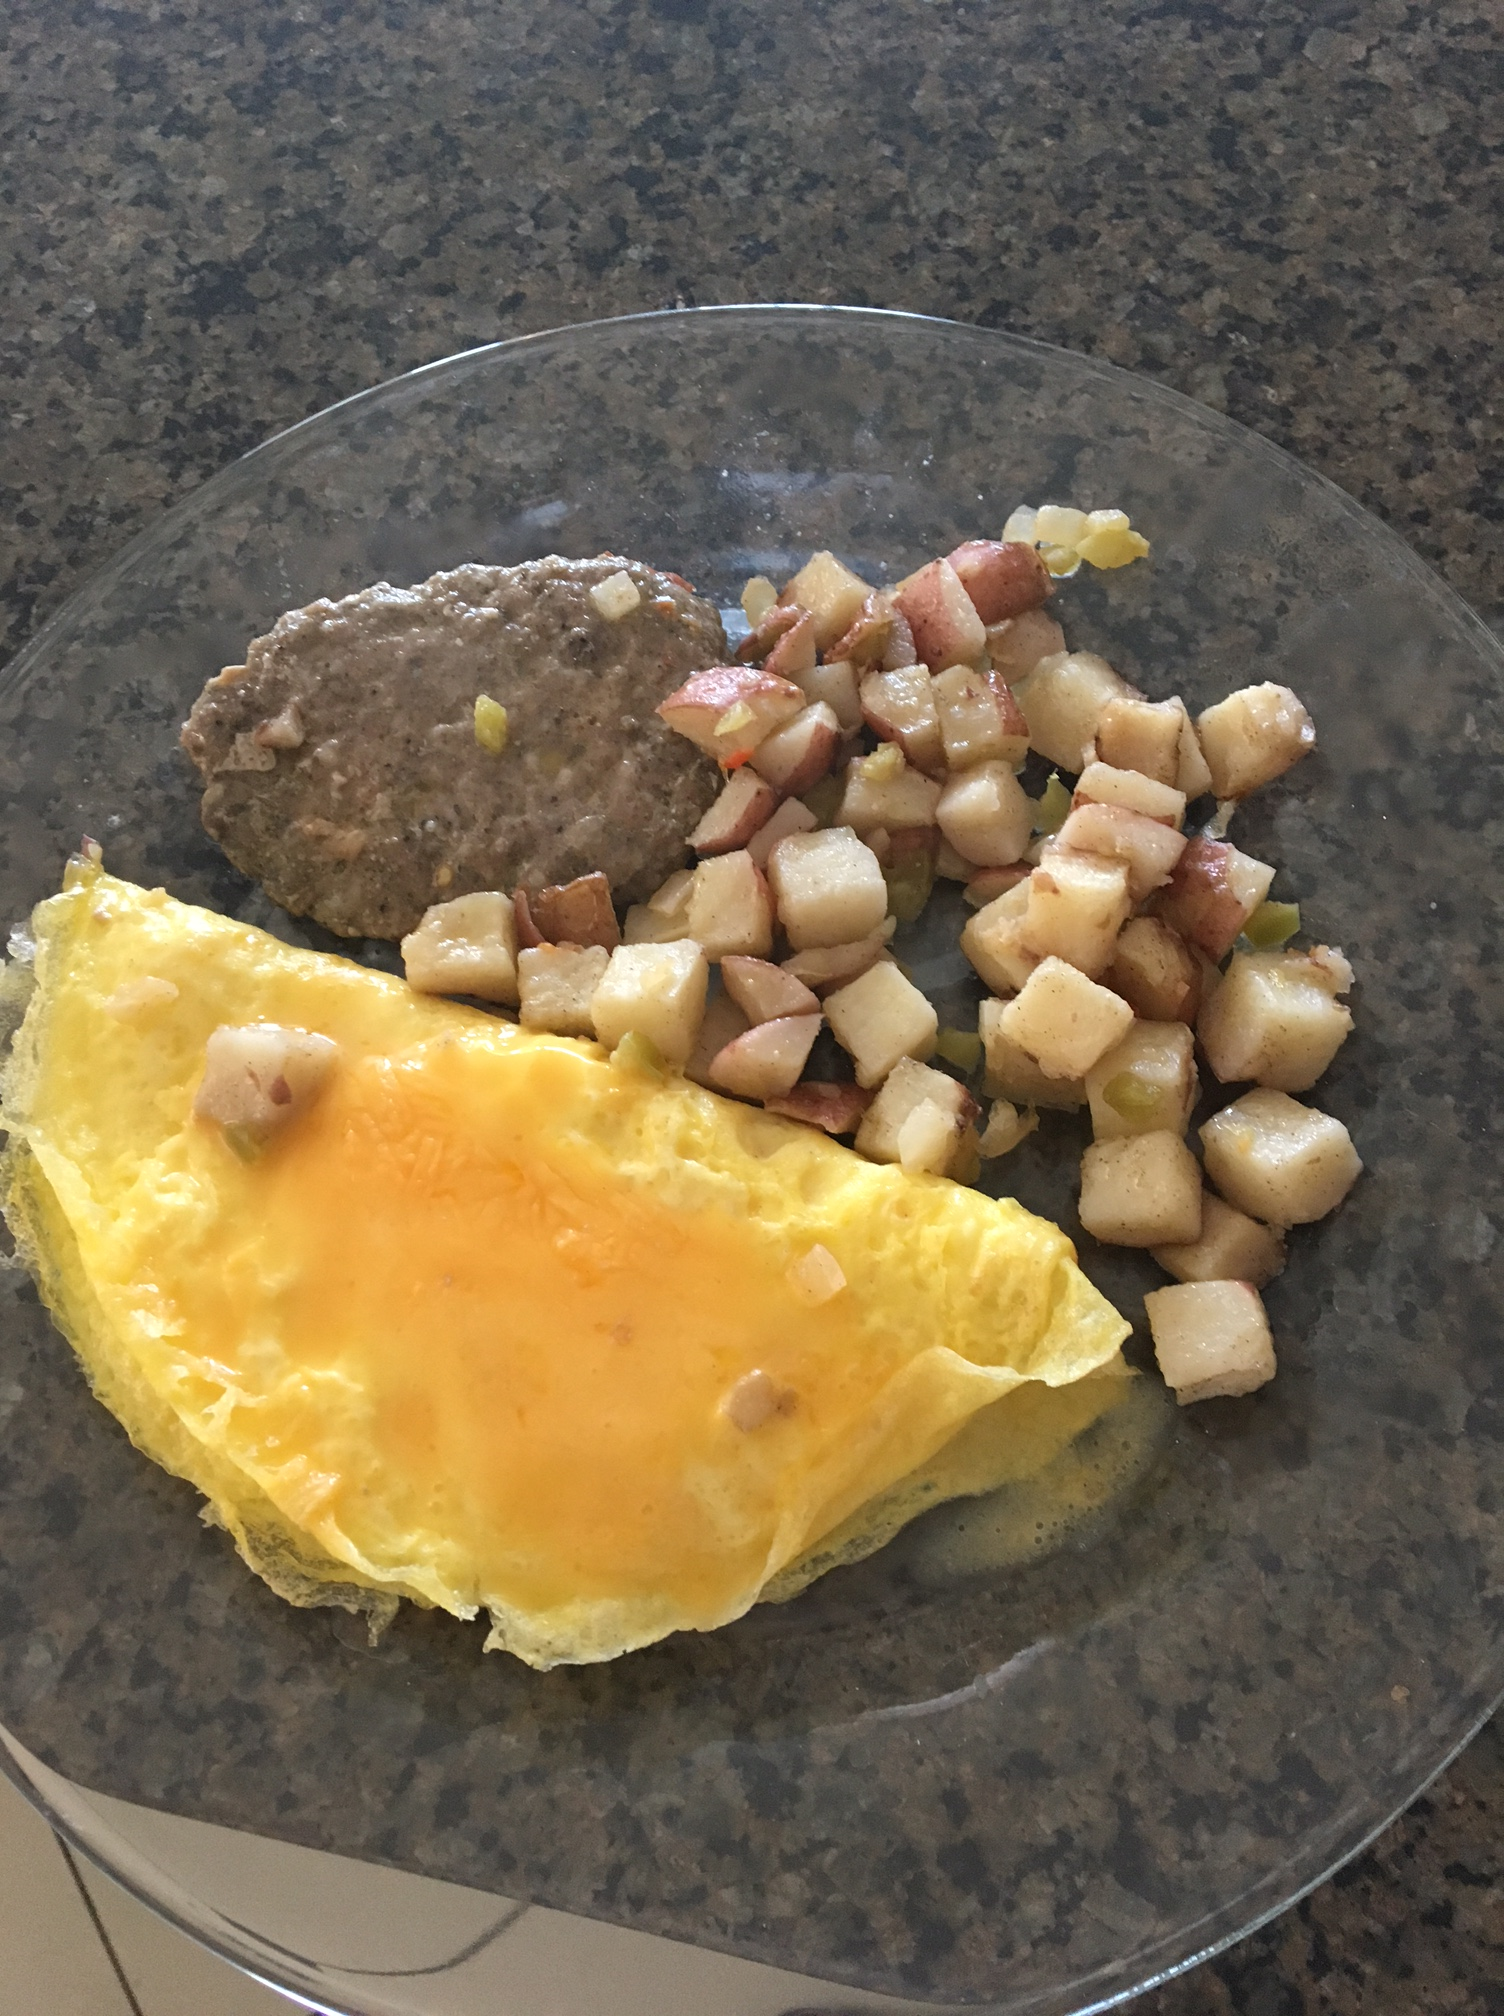 freshly meal plans, eggs, potatoes